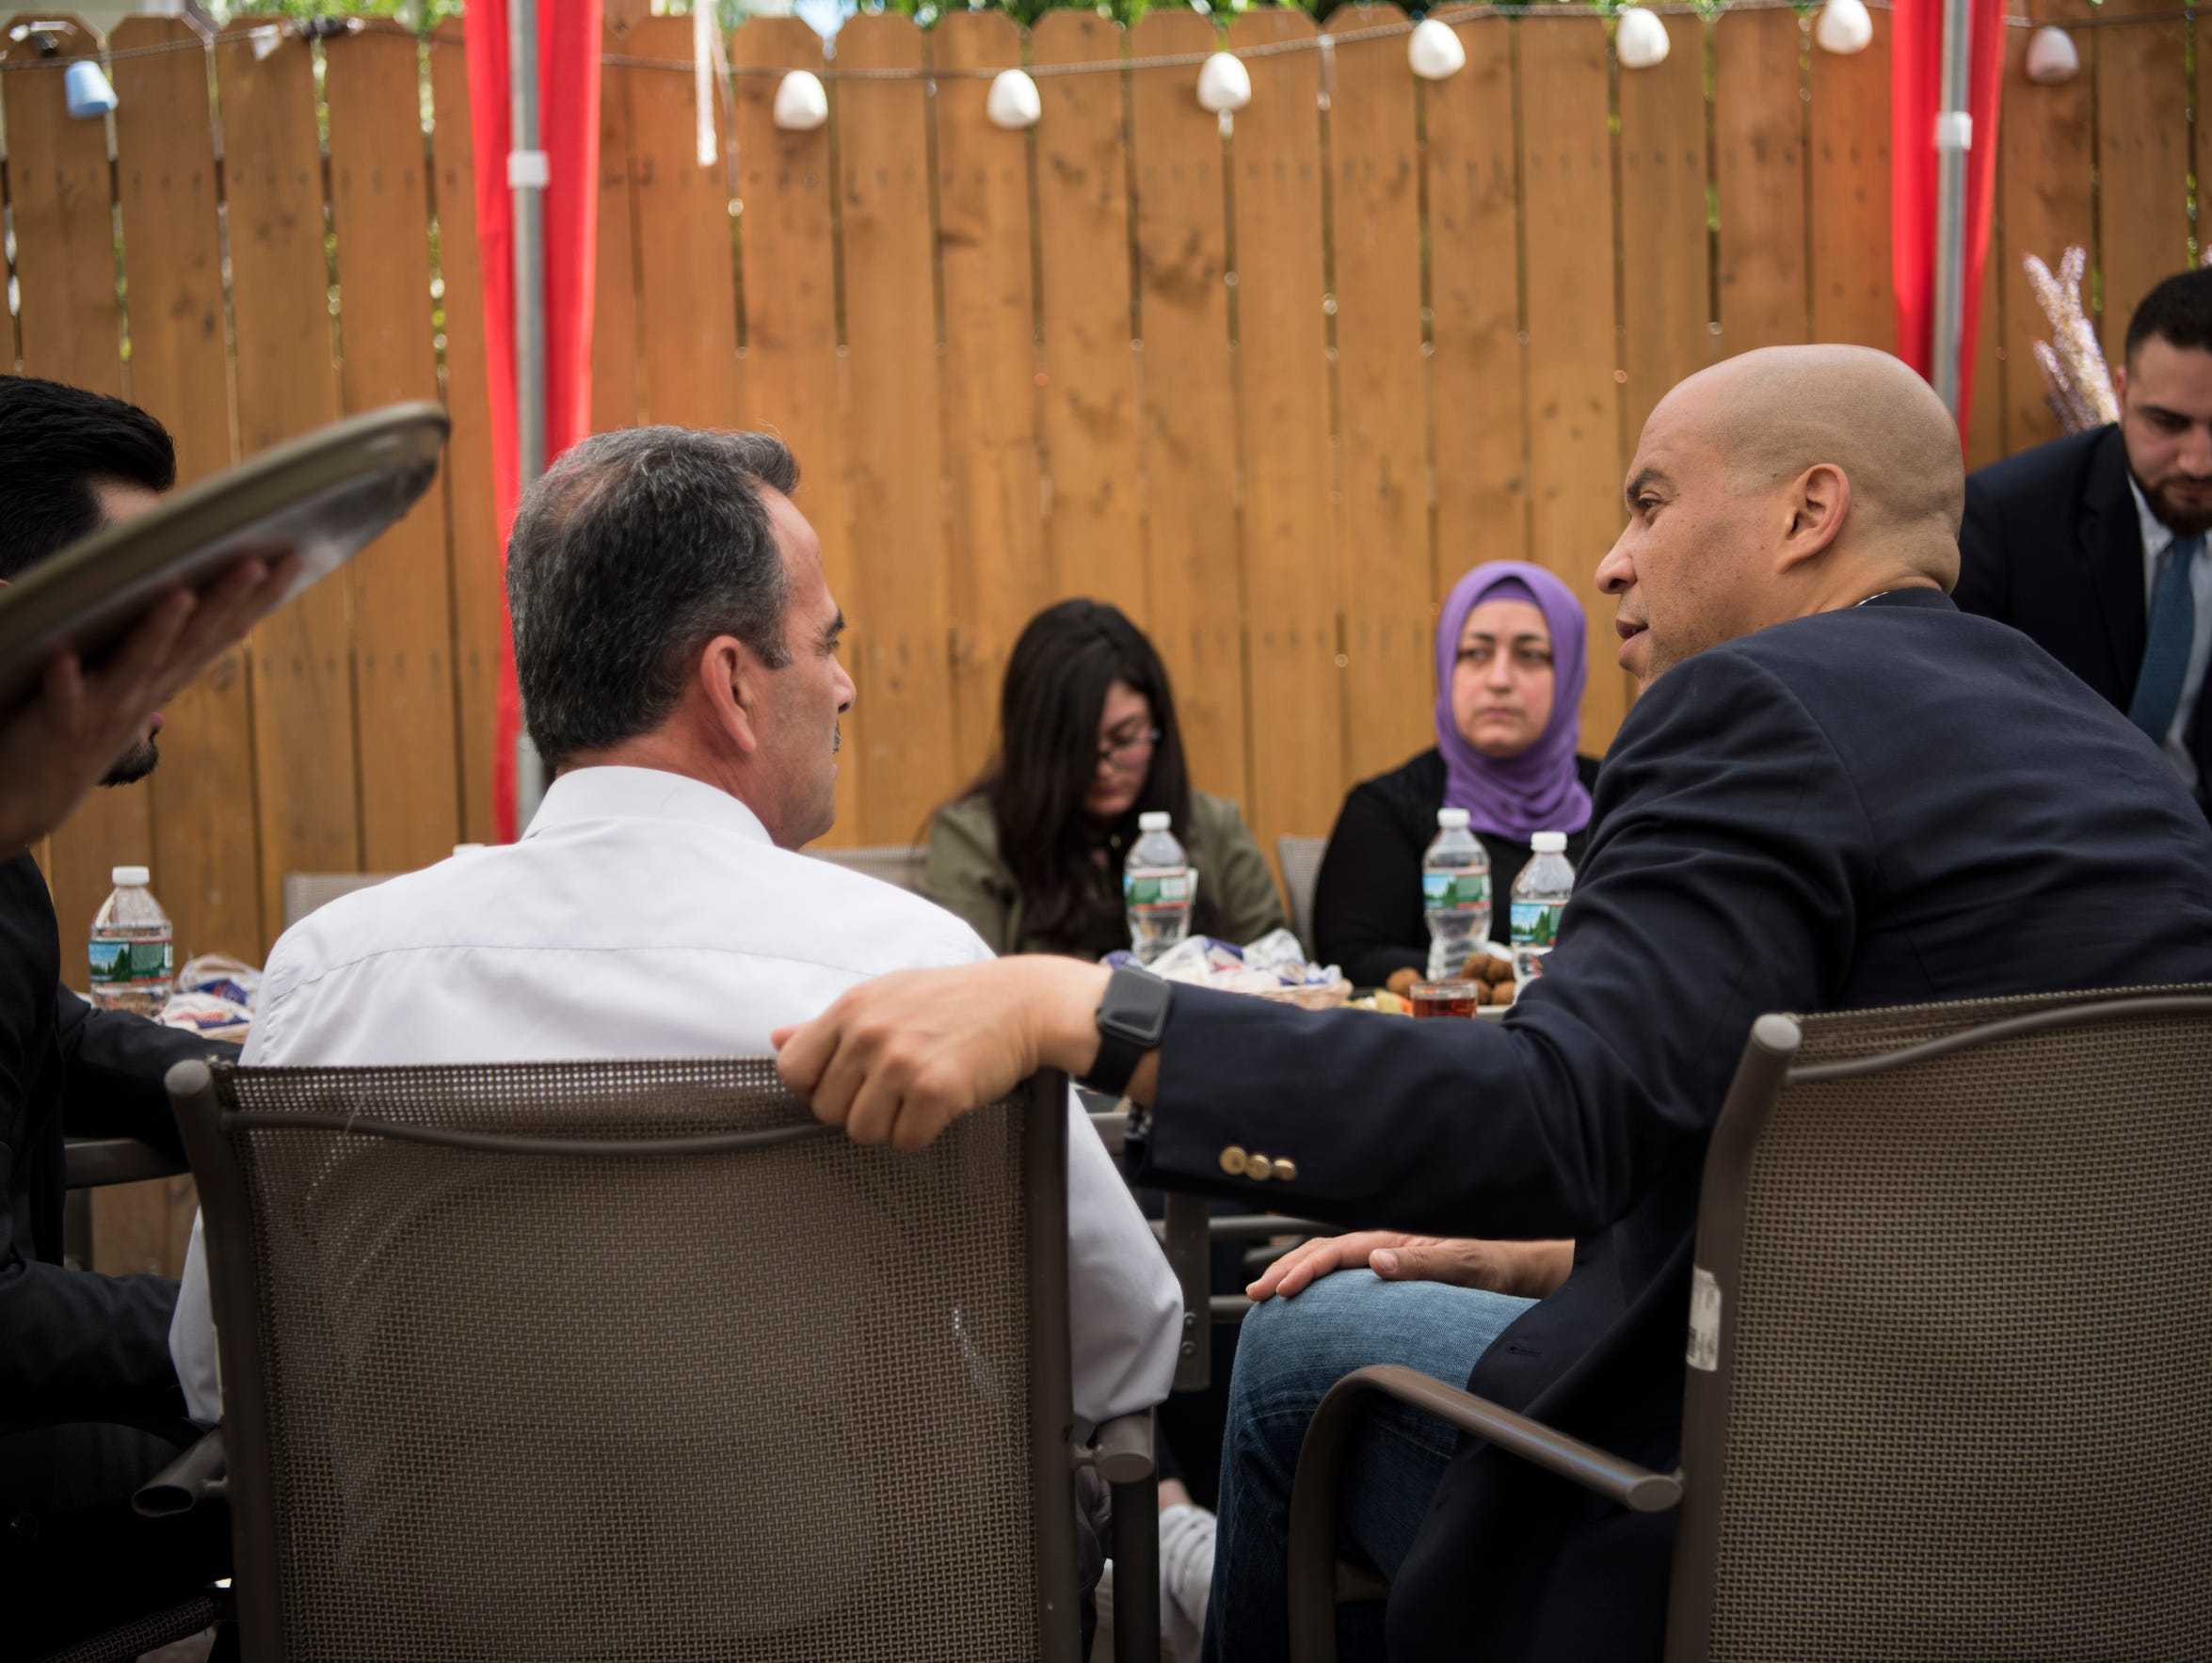 Senator Cory Booker talks with Nour Ajouz, a Syrian